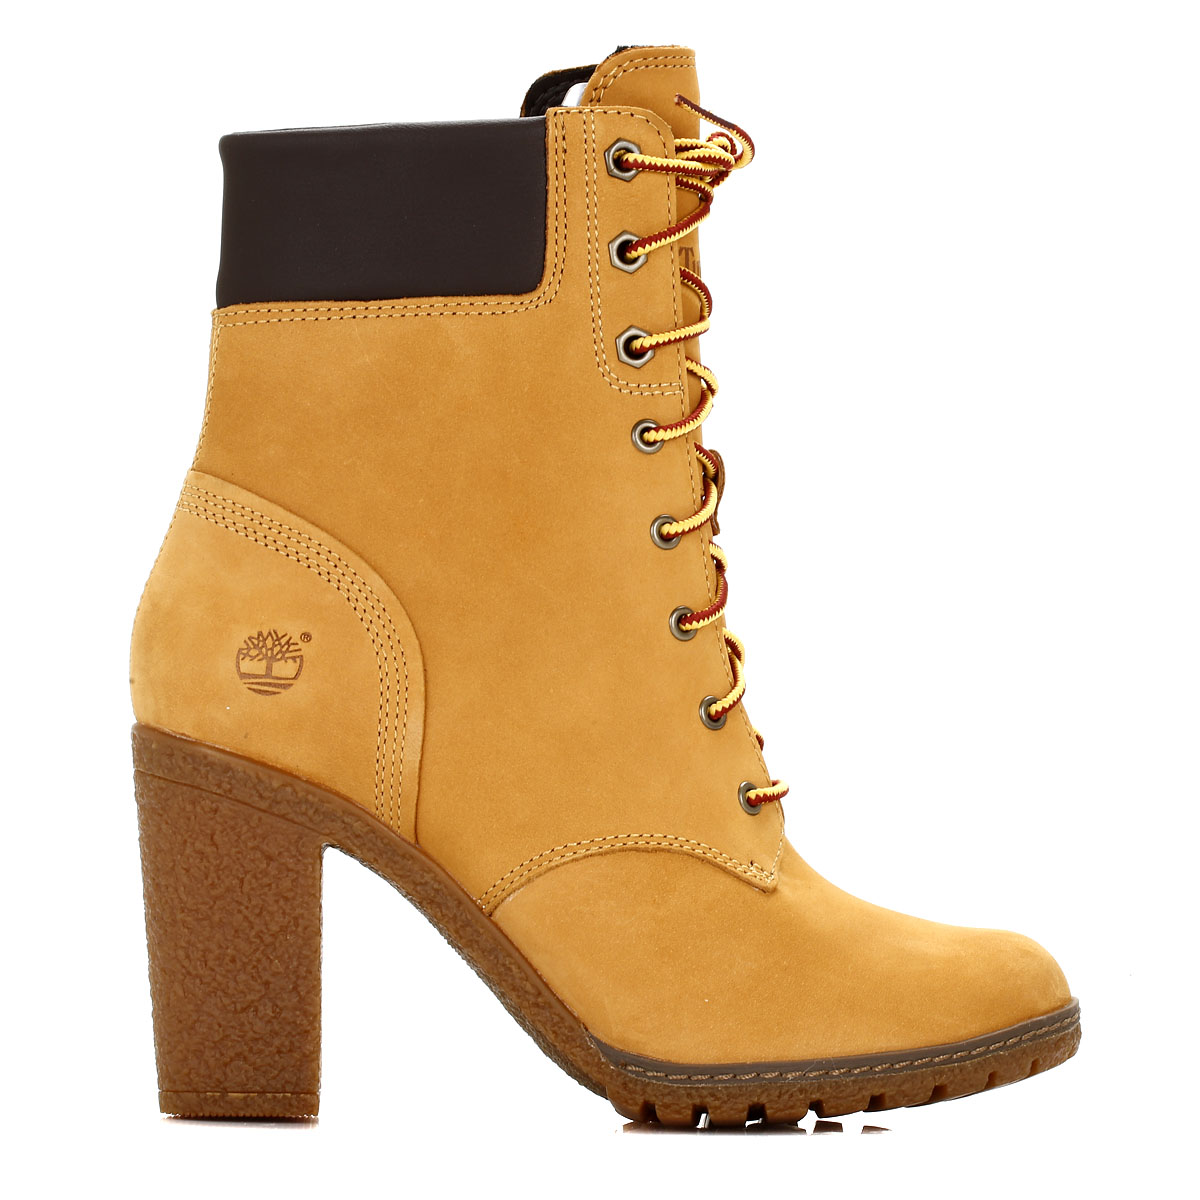 Lastest Timberland Yellow Boots Women With Simple Innovation | Sobatapk.com